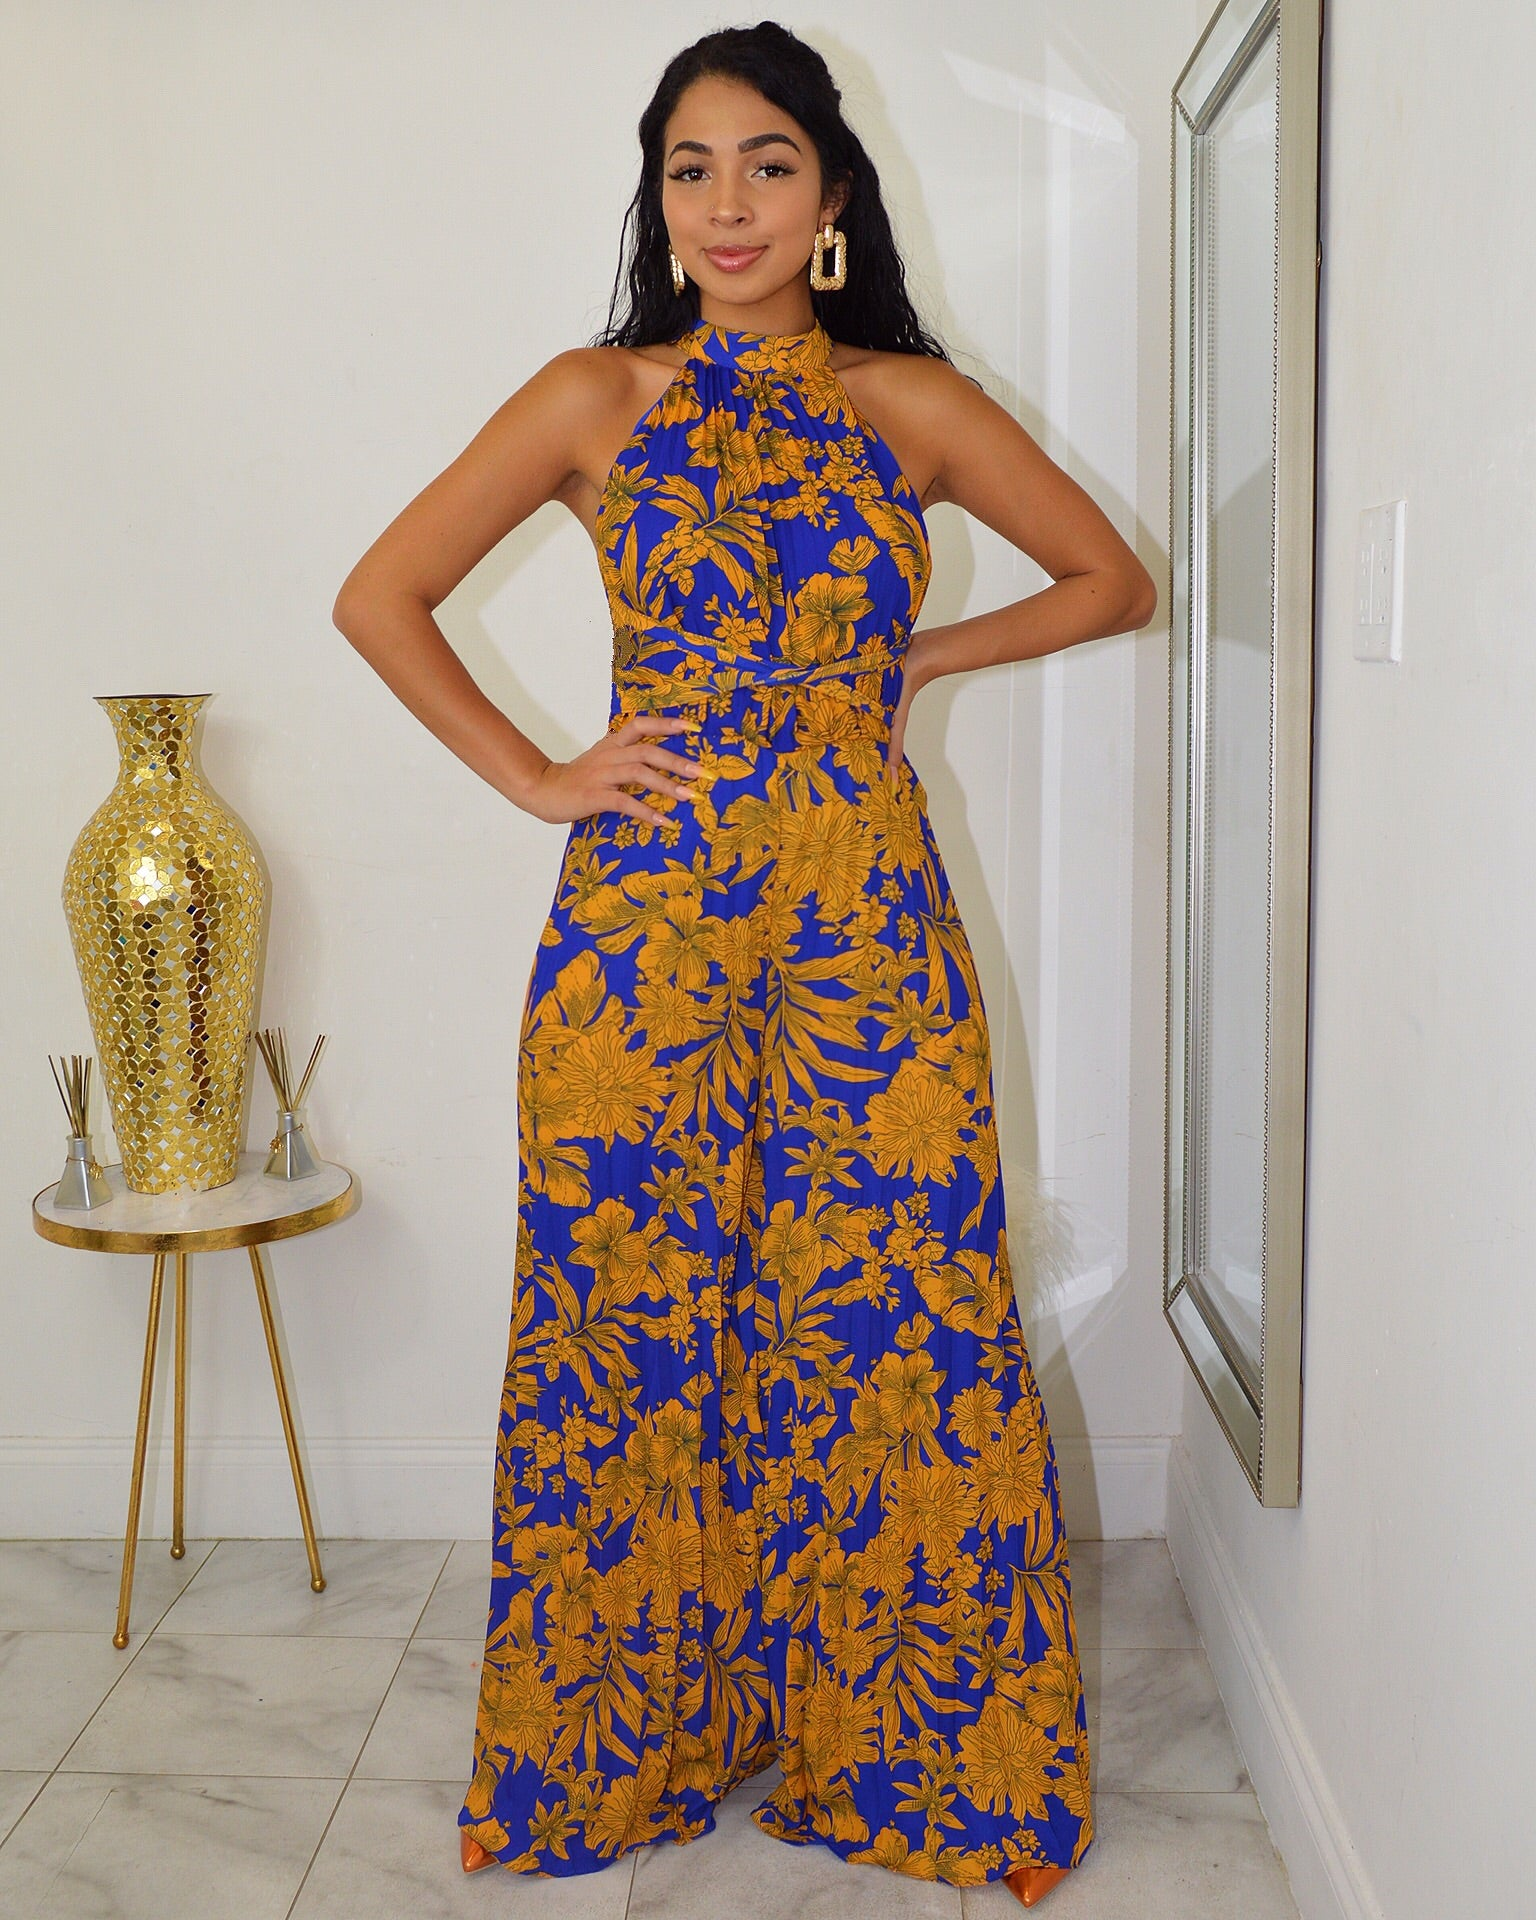 Bahama Breeze Pleaded Blue Maxi Jumpsuit - La Epoca Fashion